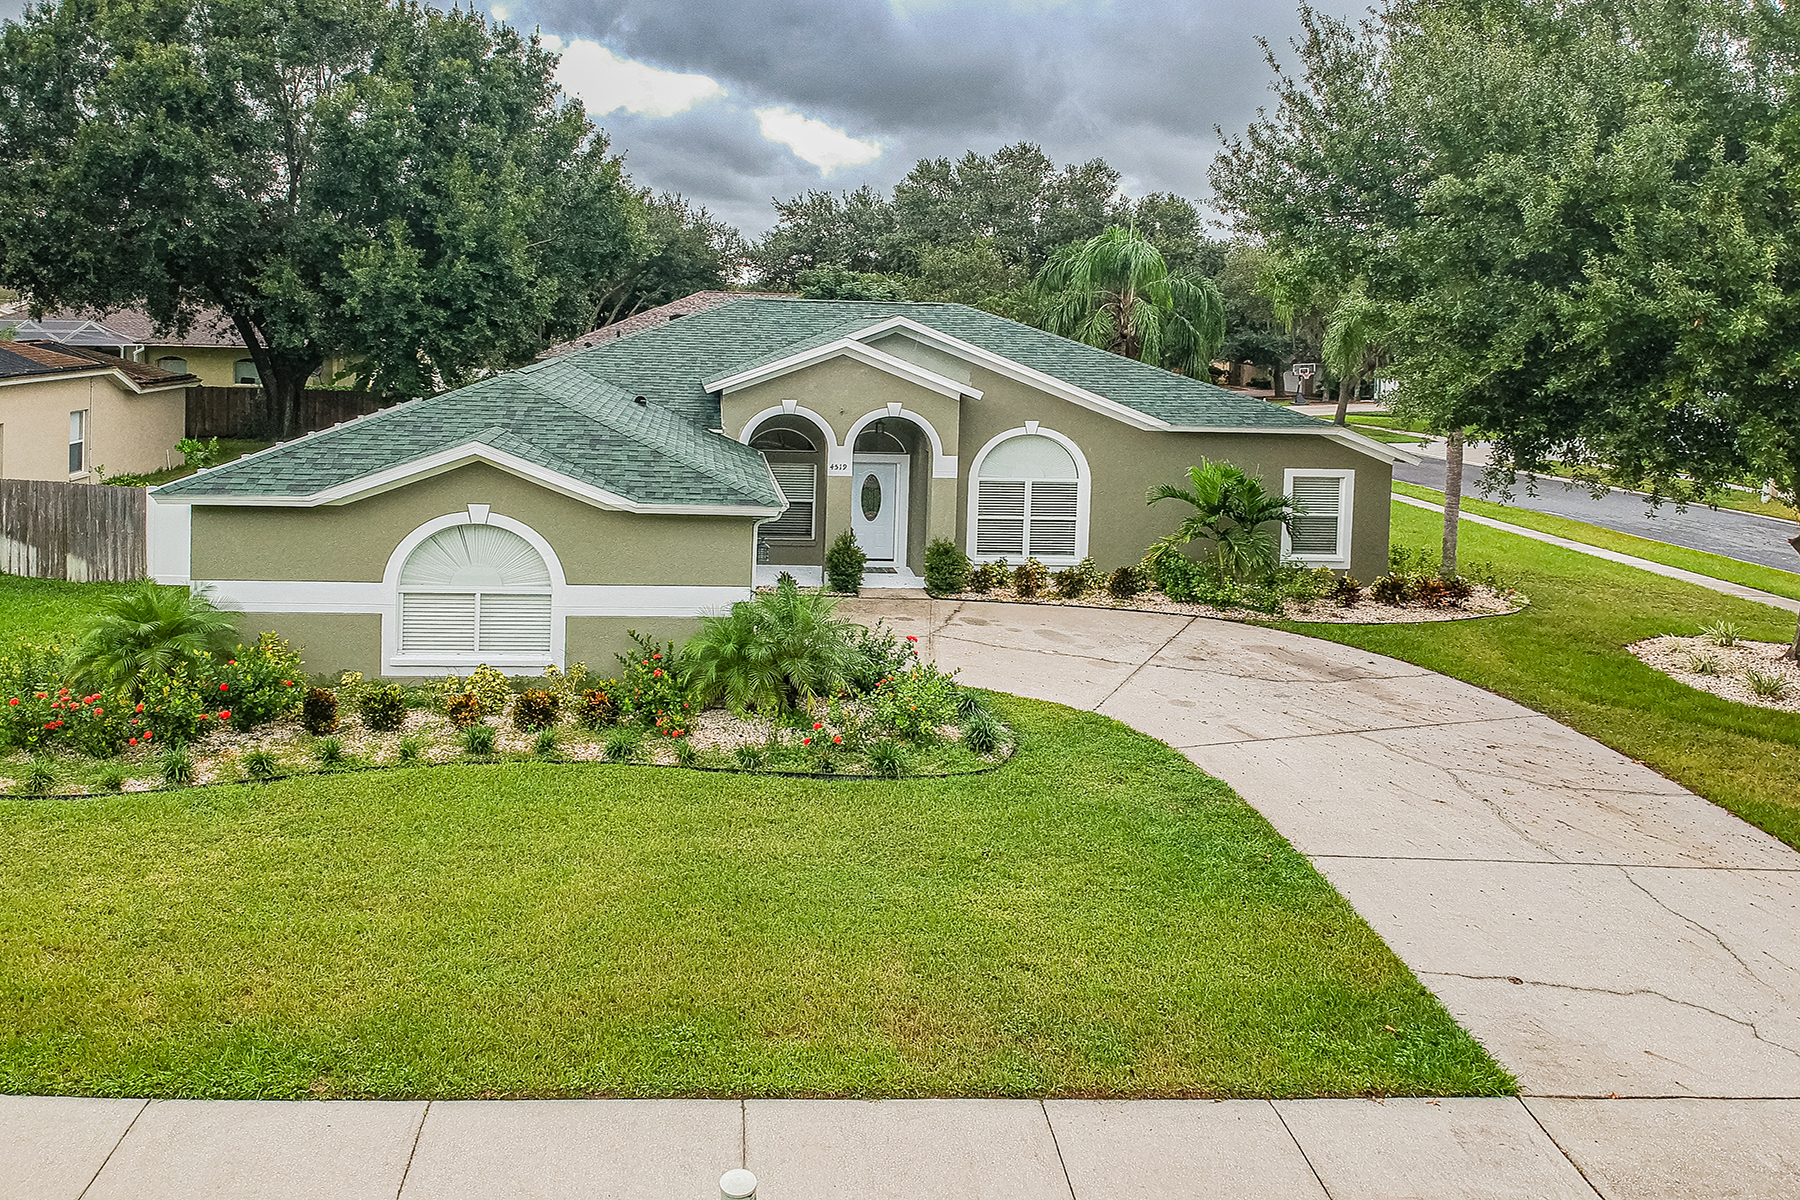 Single Family Homes for Sale at VALRICO 4519 Gentrice Dr Valrico, Florida 33596 United States